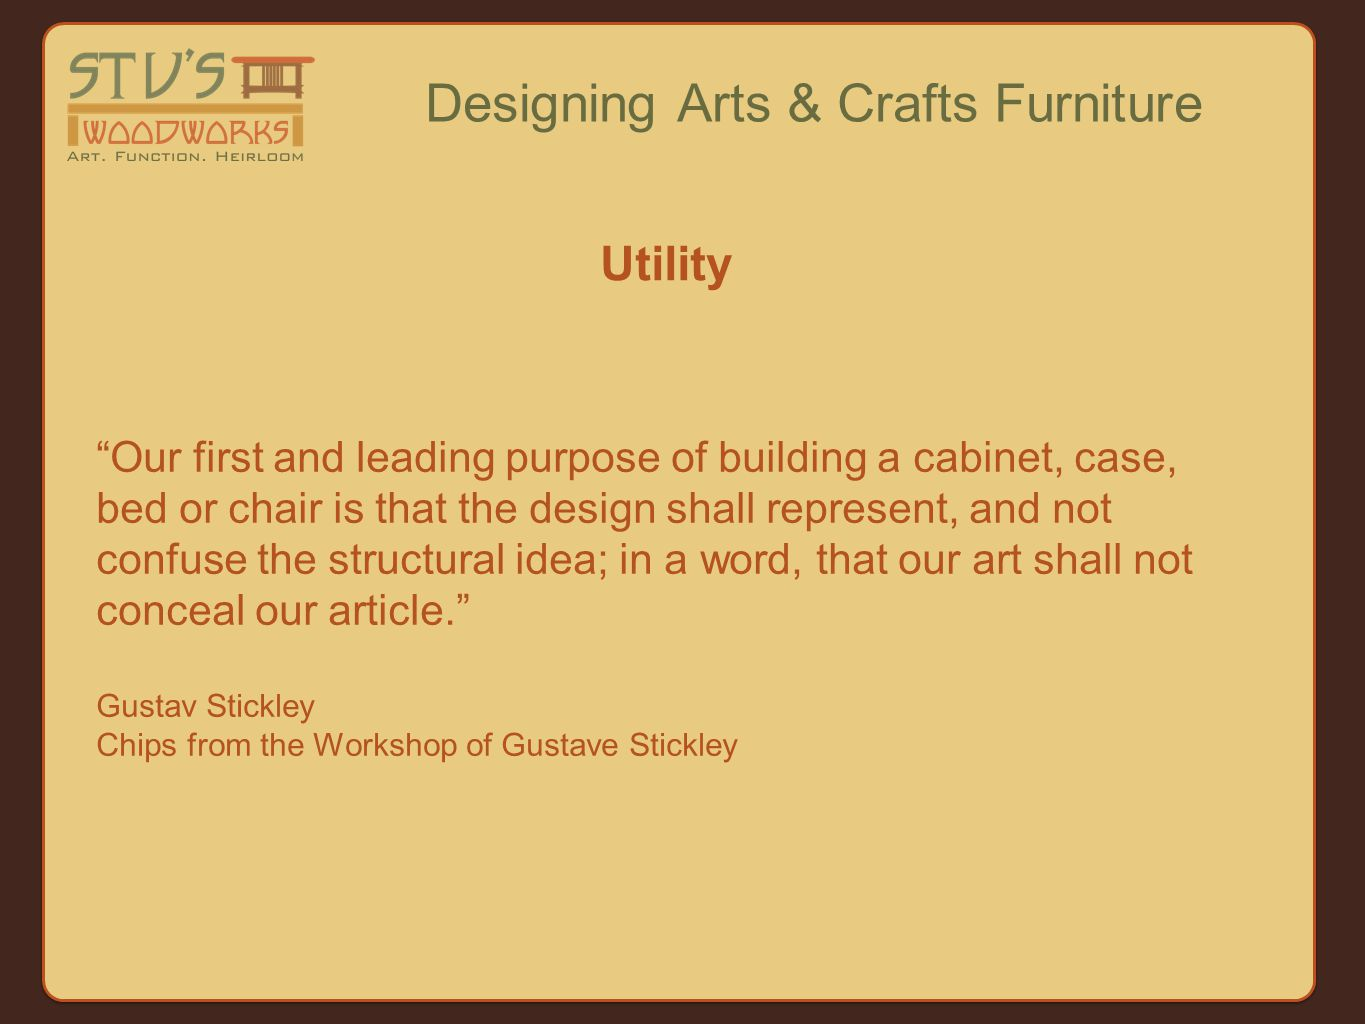 Our first and leading purpose of building a cabinet, case, bed or chair is that the design shall represent, and not confuse the structural idea; in a word, that our art shall not conceal our article. Gustav Stickley Chips from the Workshop of Gustave Stickley Designing Arts & Crafts Furniture Utility